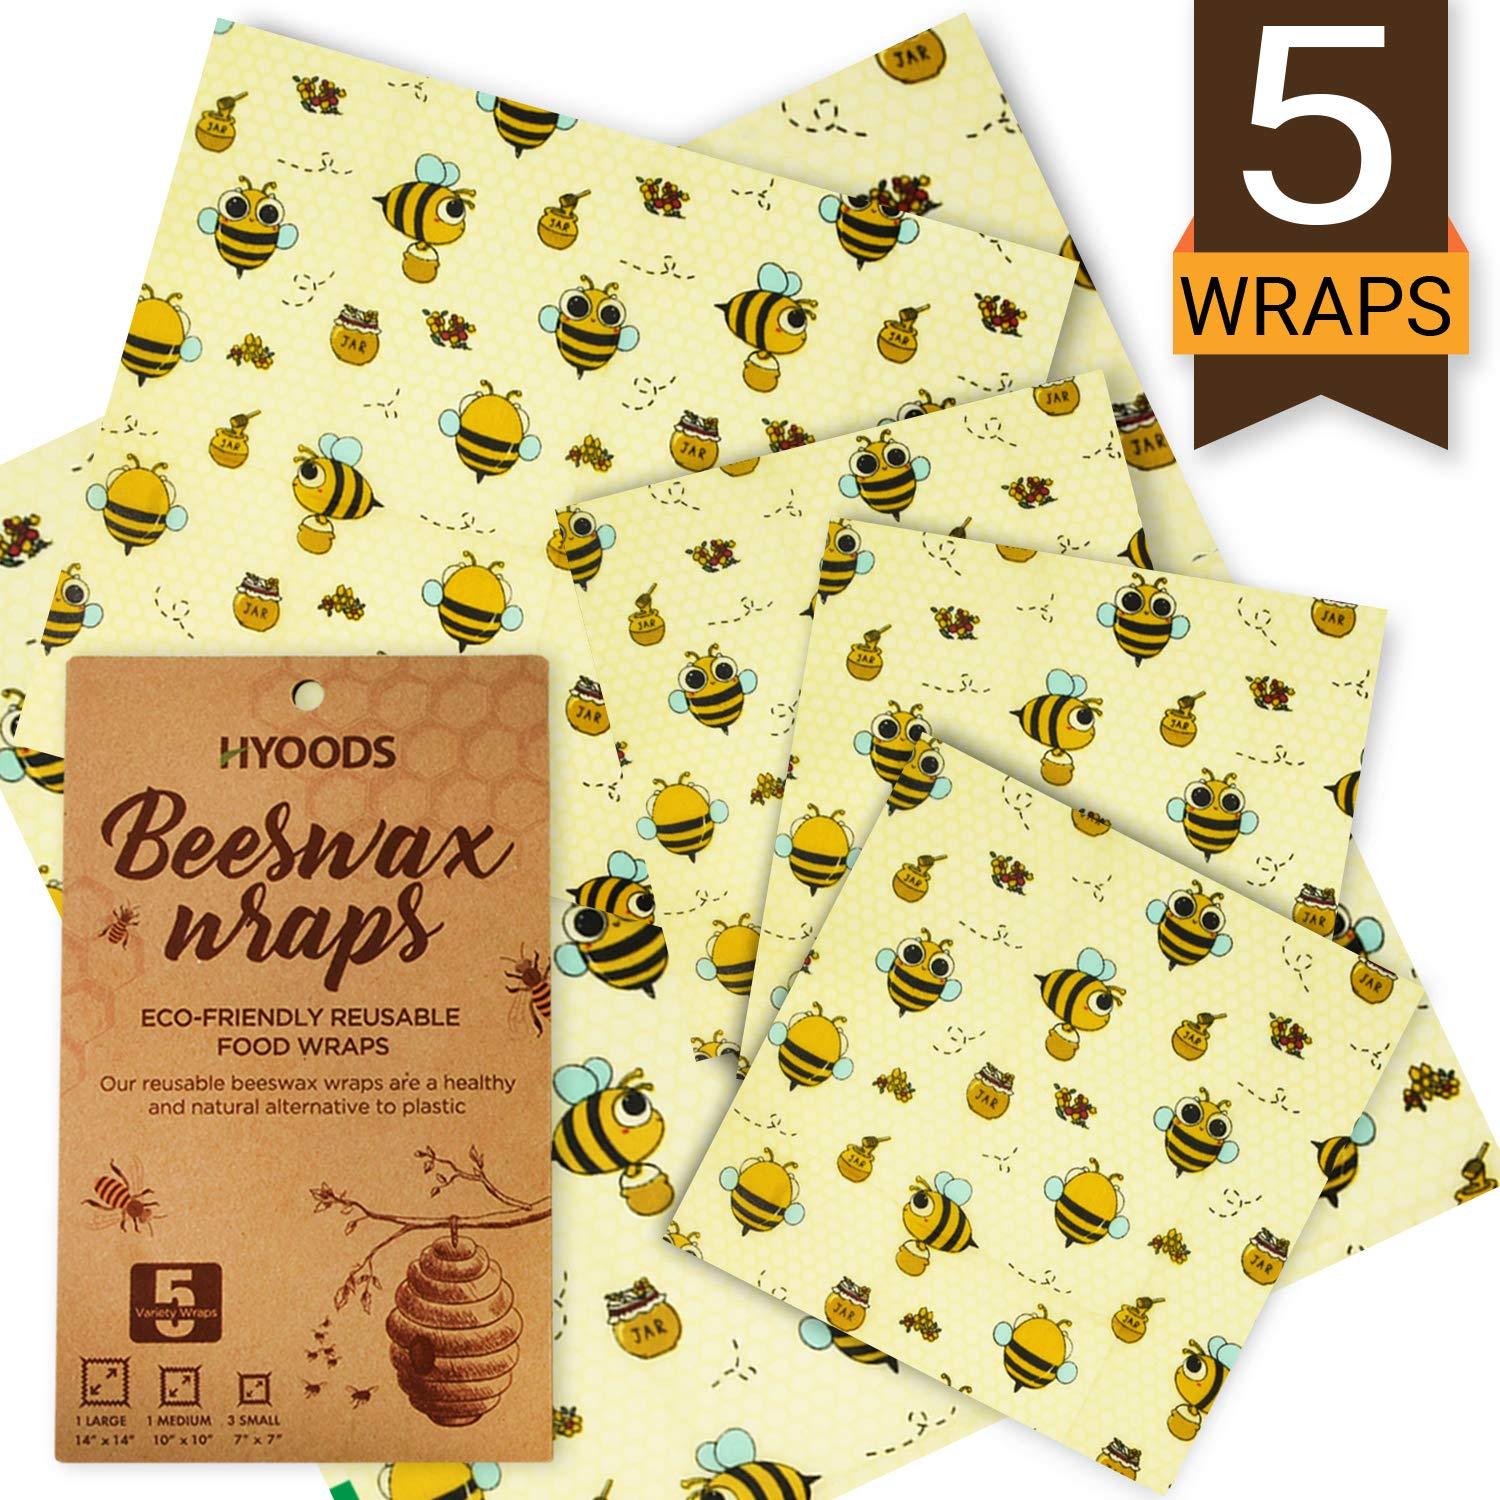 Beeswax Wraps - Set of 5 Resuable Bees Wax Food Wraps, Zero Waste Sustainable Storage for Sandwich, Cheese, Fruit, Bread, Snacks | Eco Friendly Alternative to Plastic Bags, Cling Wrap by HYOODS